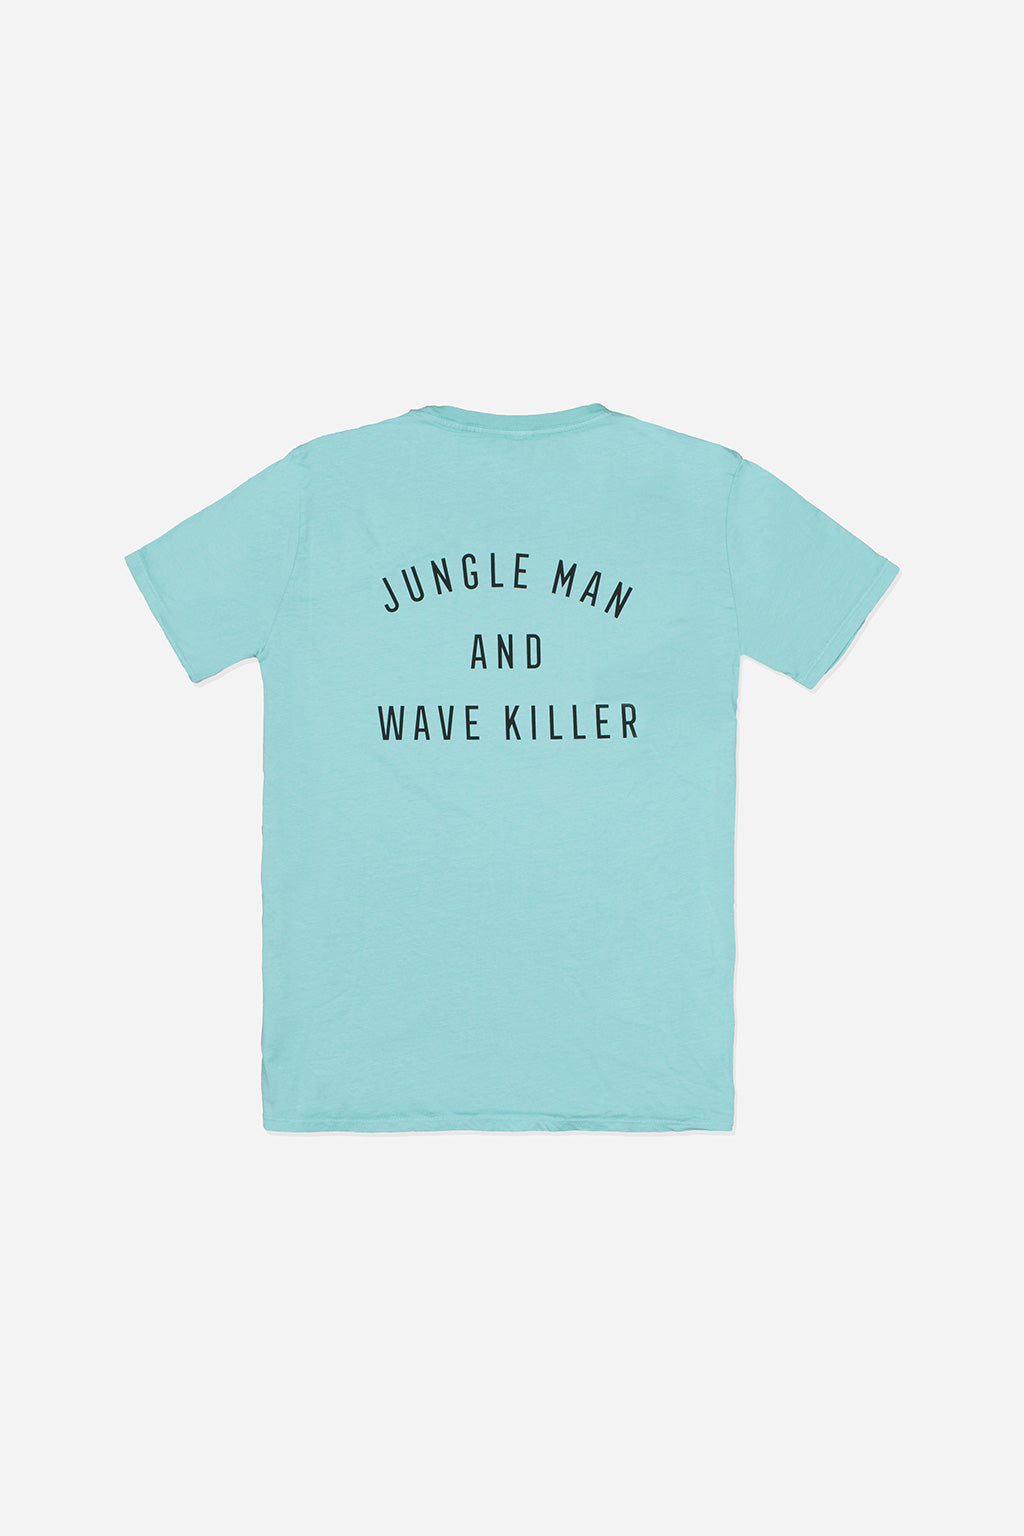 Quality Peoples Unisex Graphic T-shirt Jungle Man Sea Foam Green Back